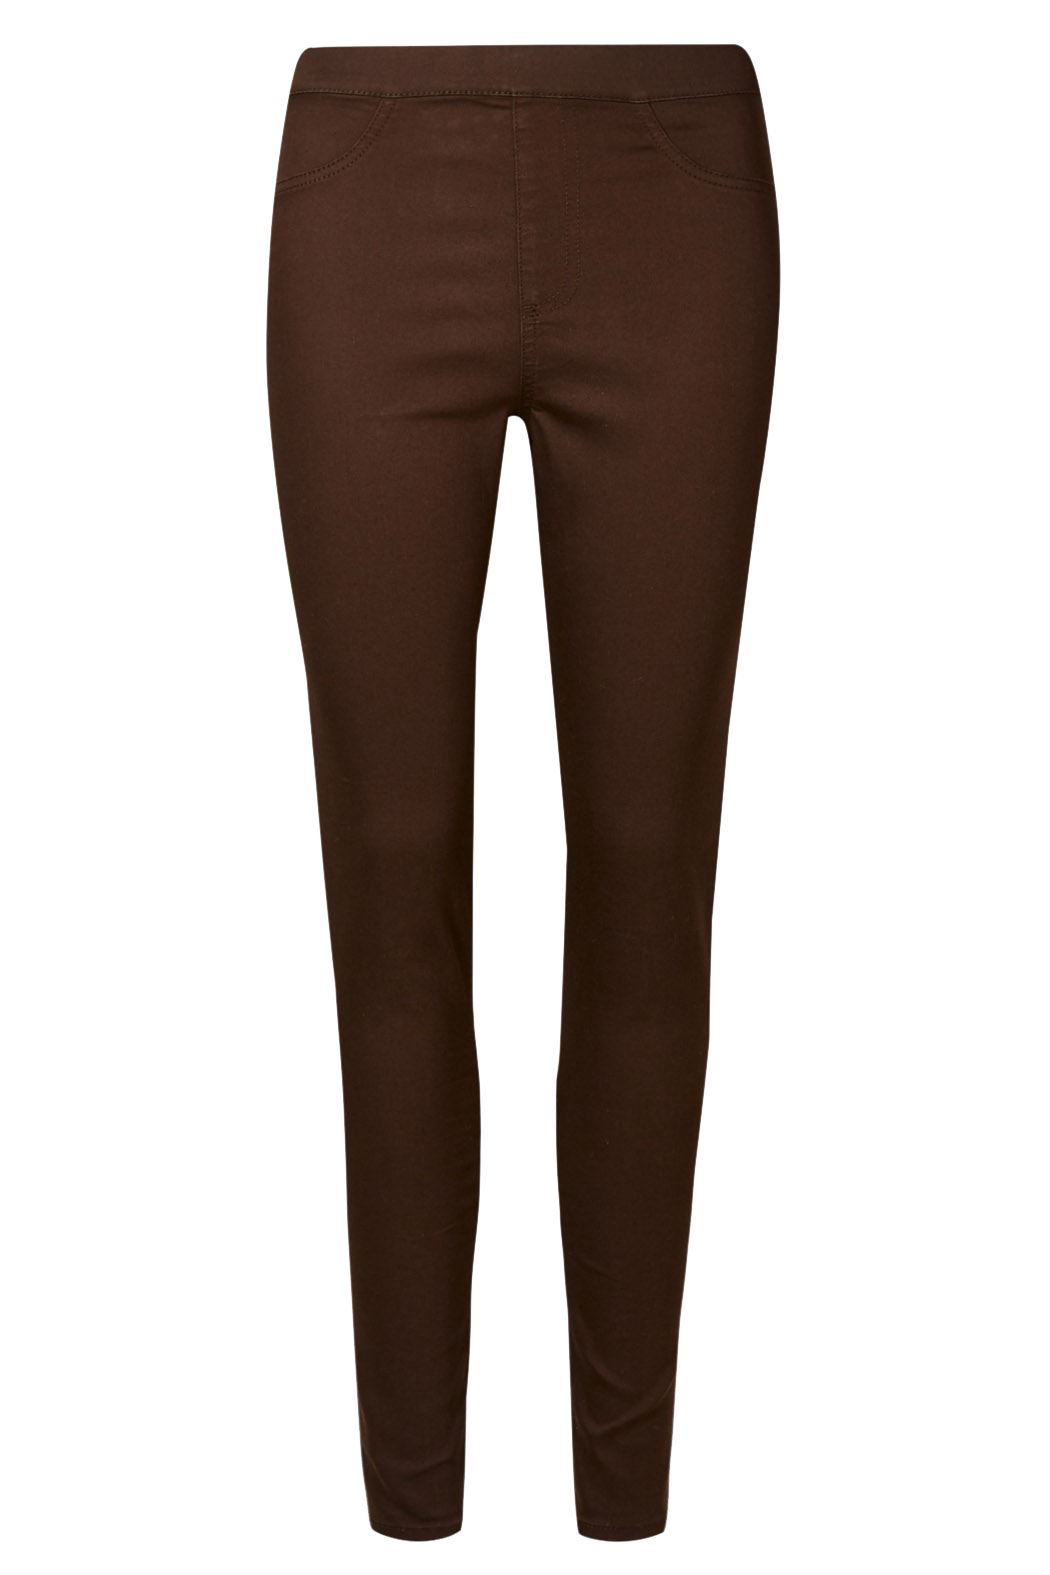 NEW-Ex-M-amp-S-Womens-Stretch-Fit-High-Waist-Skinny-Jeggings-Size-8-10-12-14-16-18 thumbnail 6